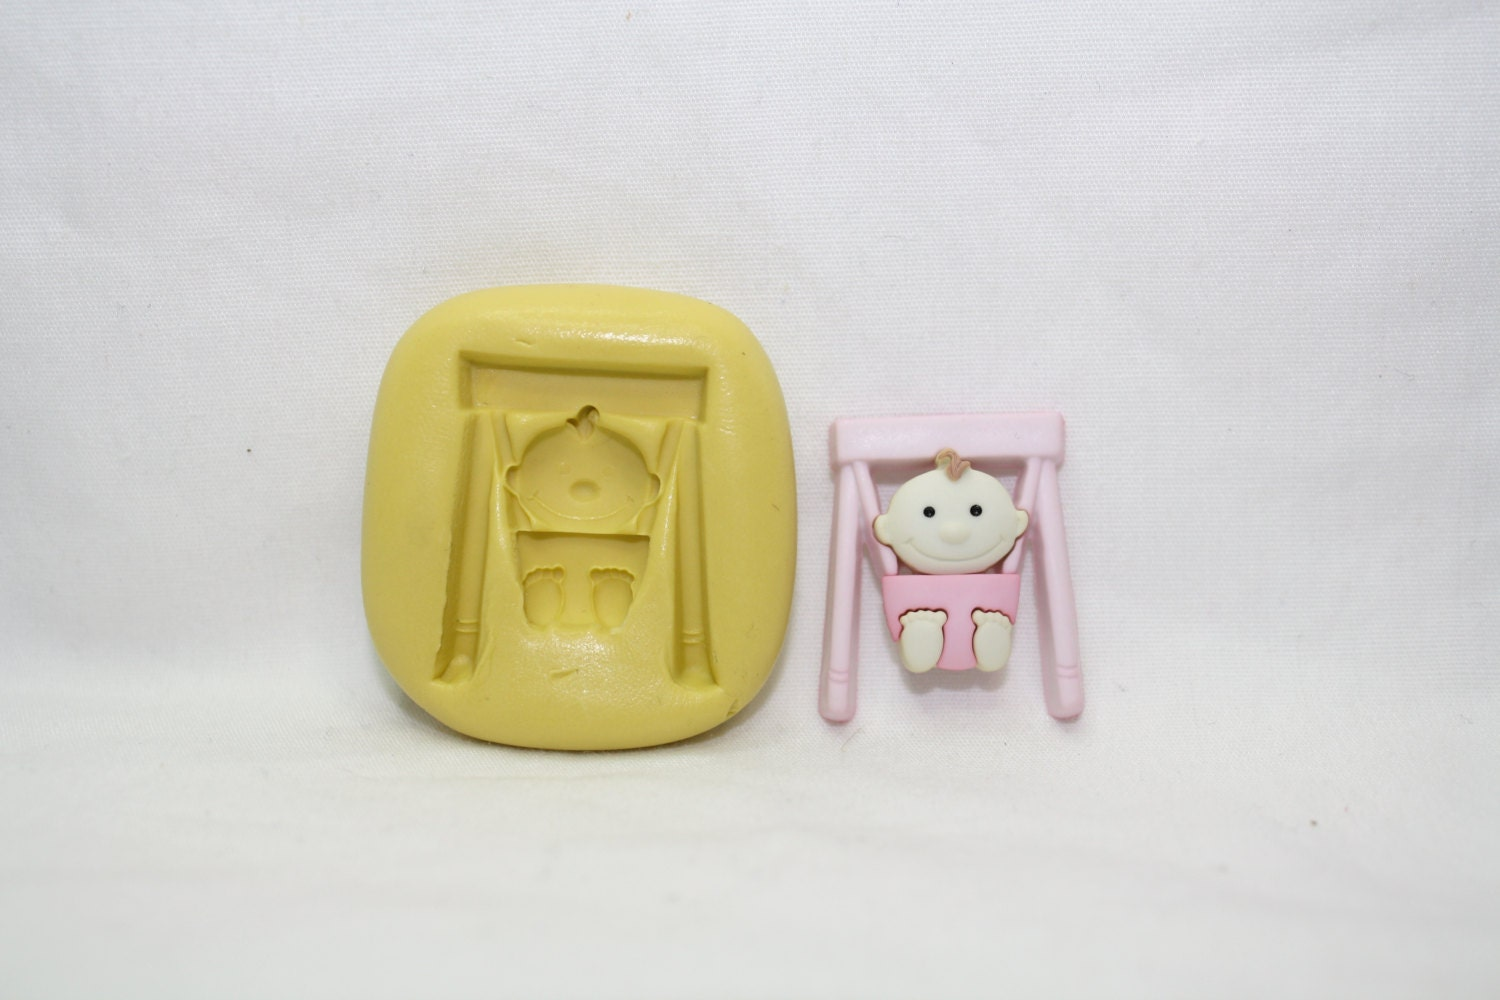 Baby bouncing chair silicone mold by Creandoparati on Etsy